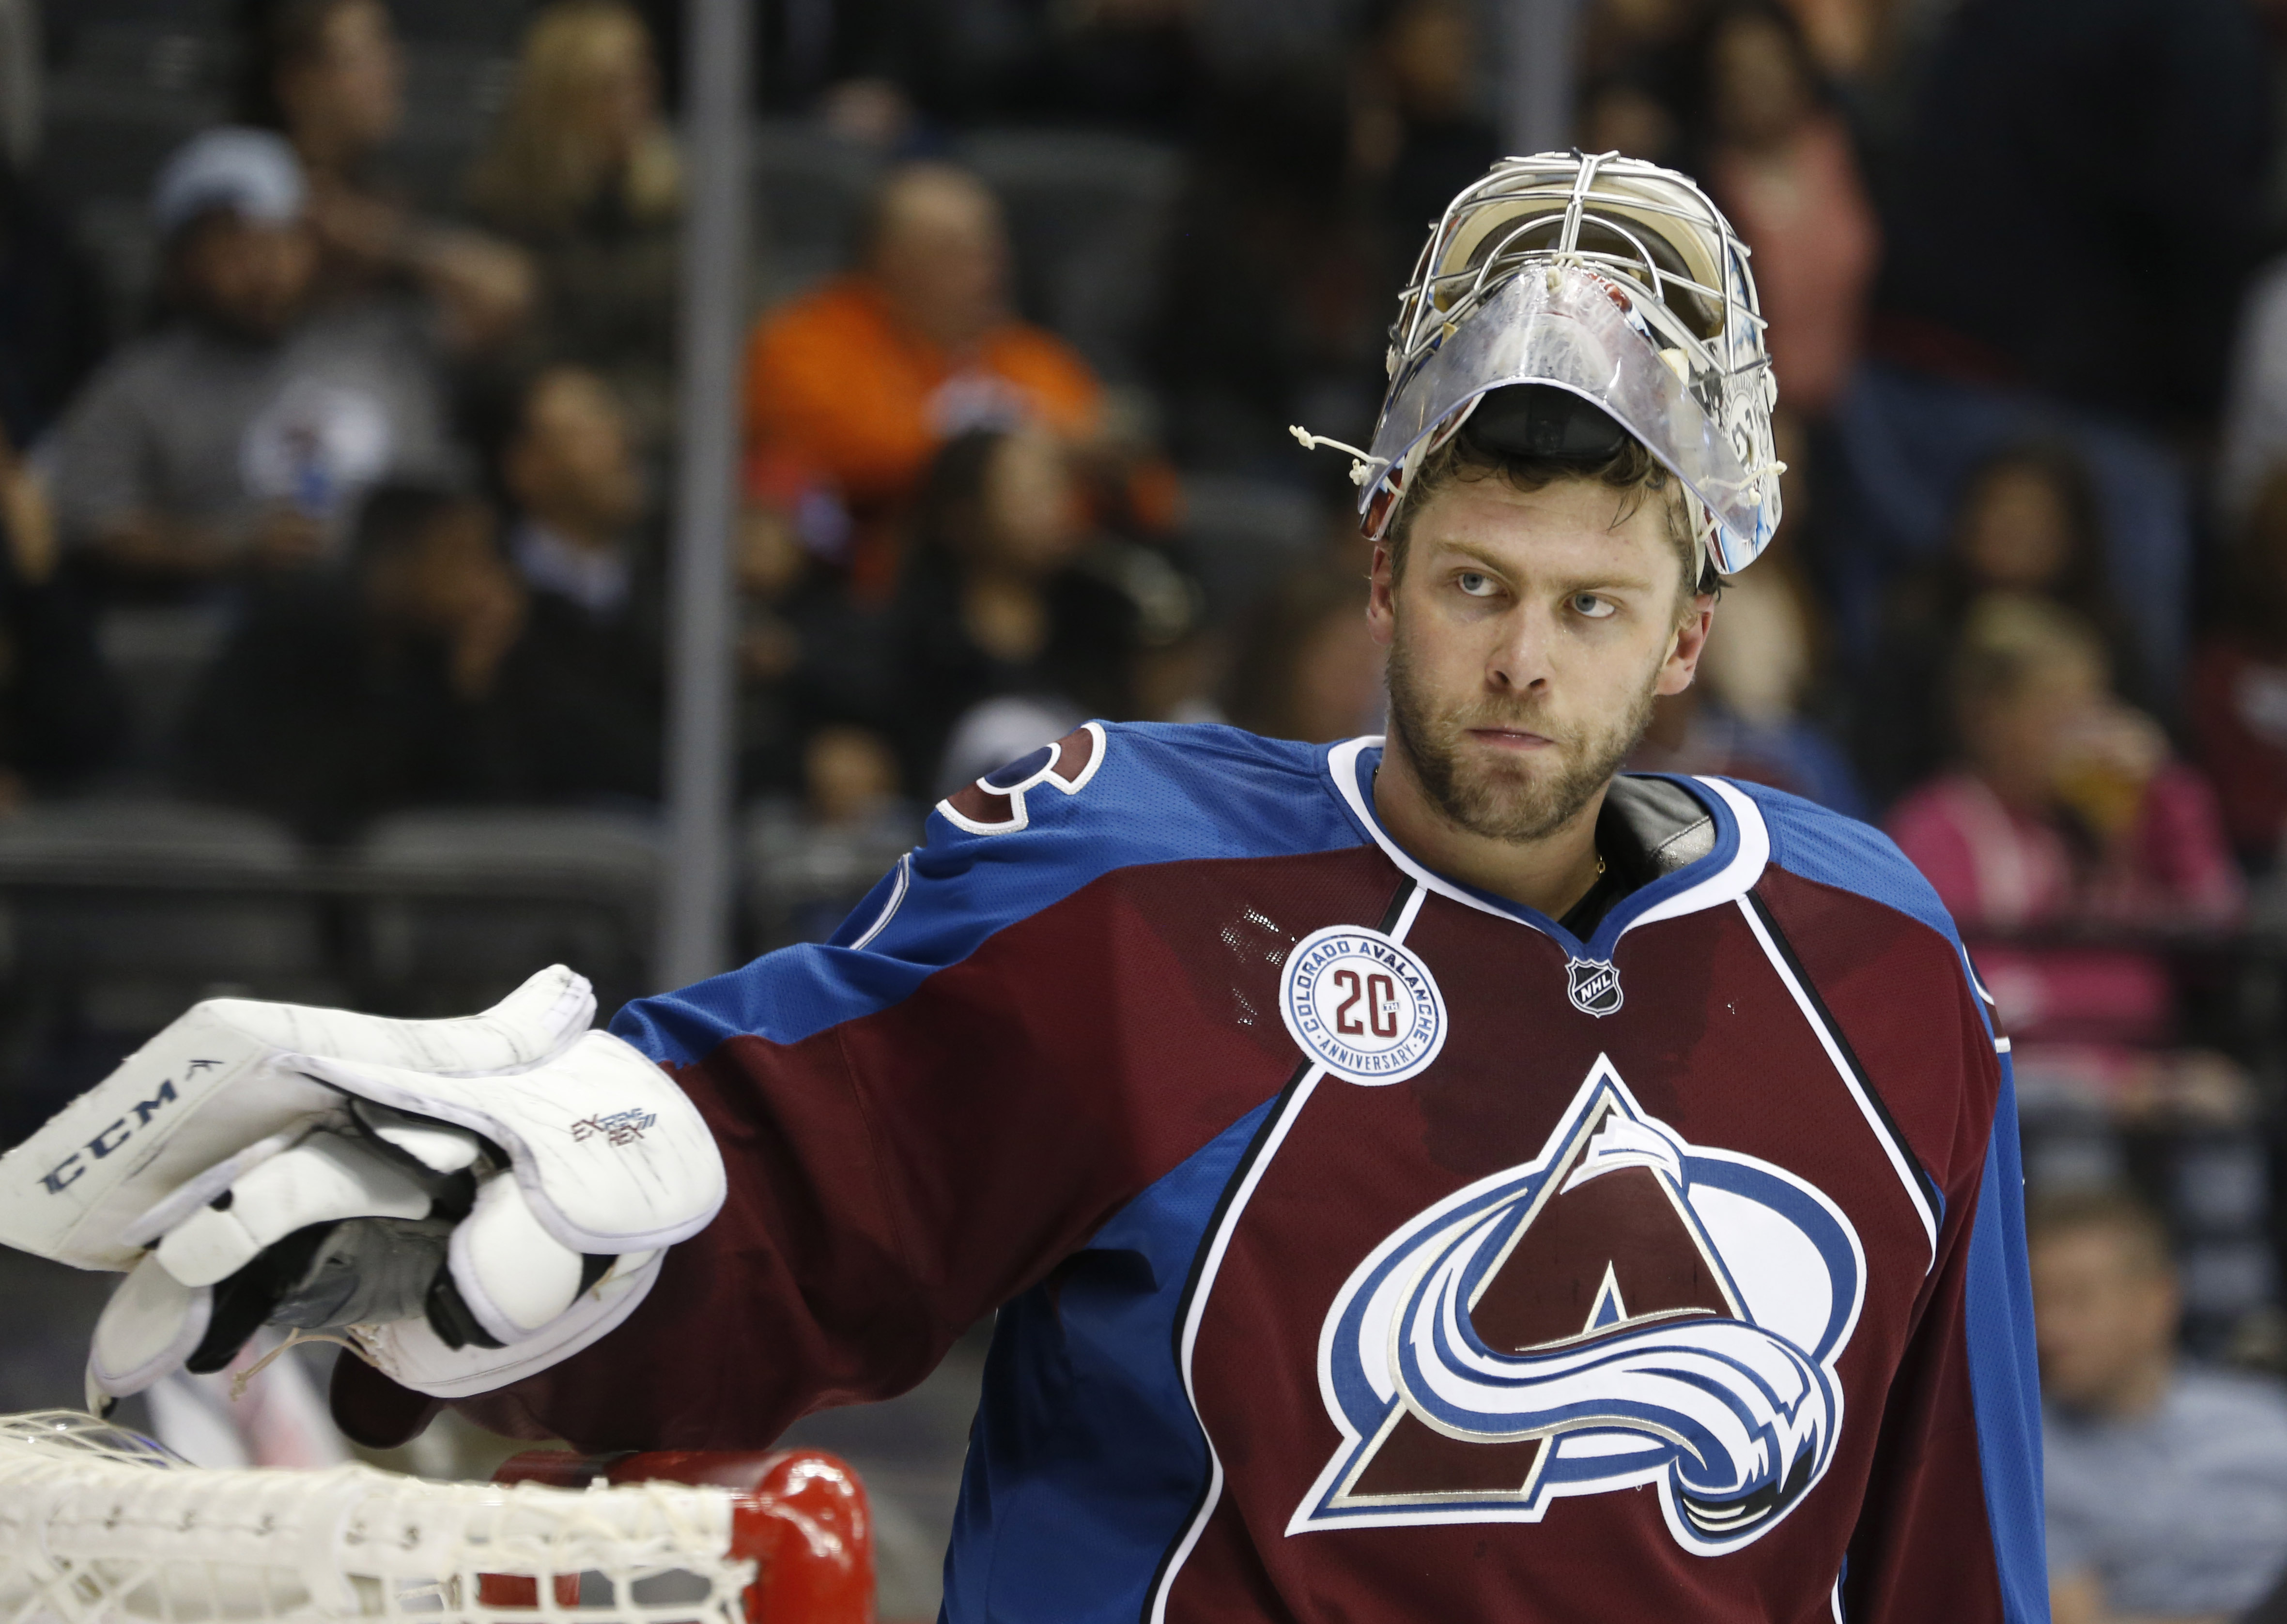 Colorado Avalanche goalie Semyon Varlamov, of Russia, waits during a timeout in the second period of  the team's NHL hockey game against the Calgary Flames on Tuesday, Nov. 3, 2015, in Denver. (AP Photo/David Zalubowski)